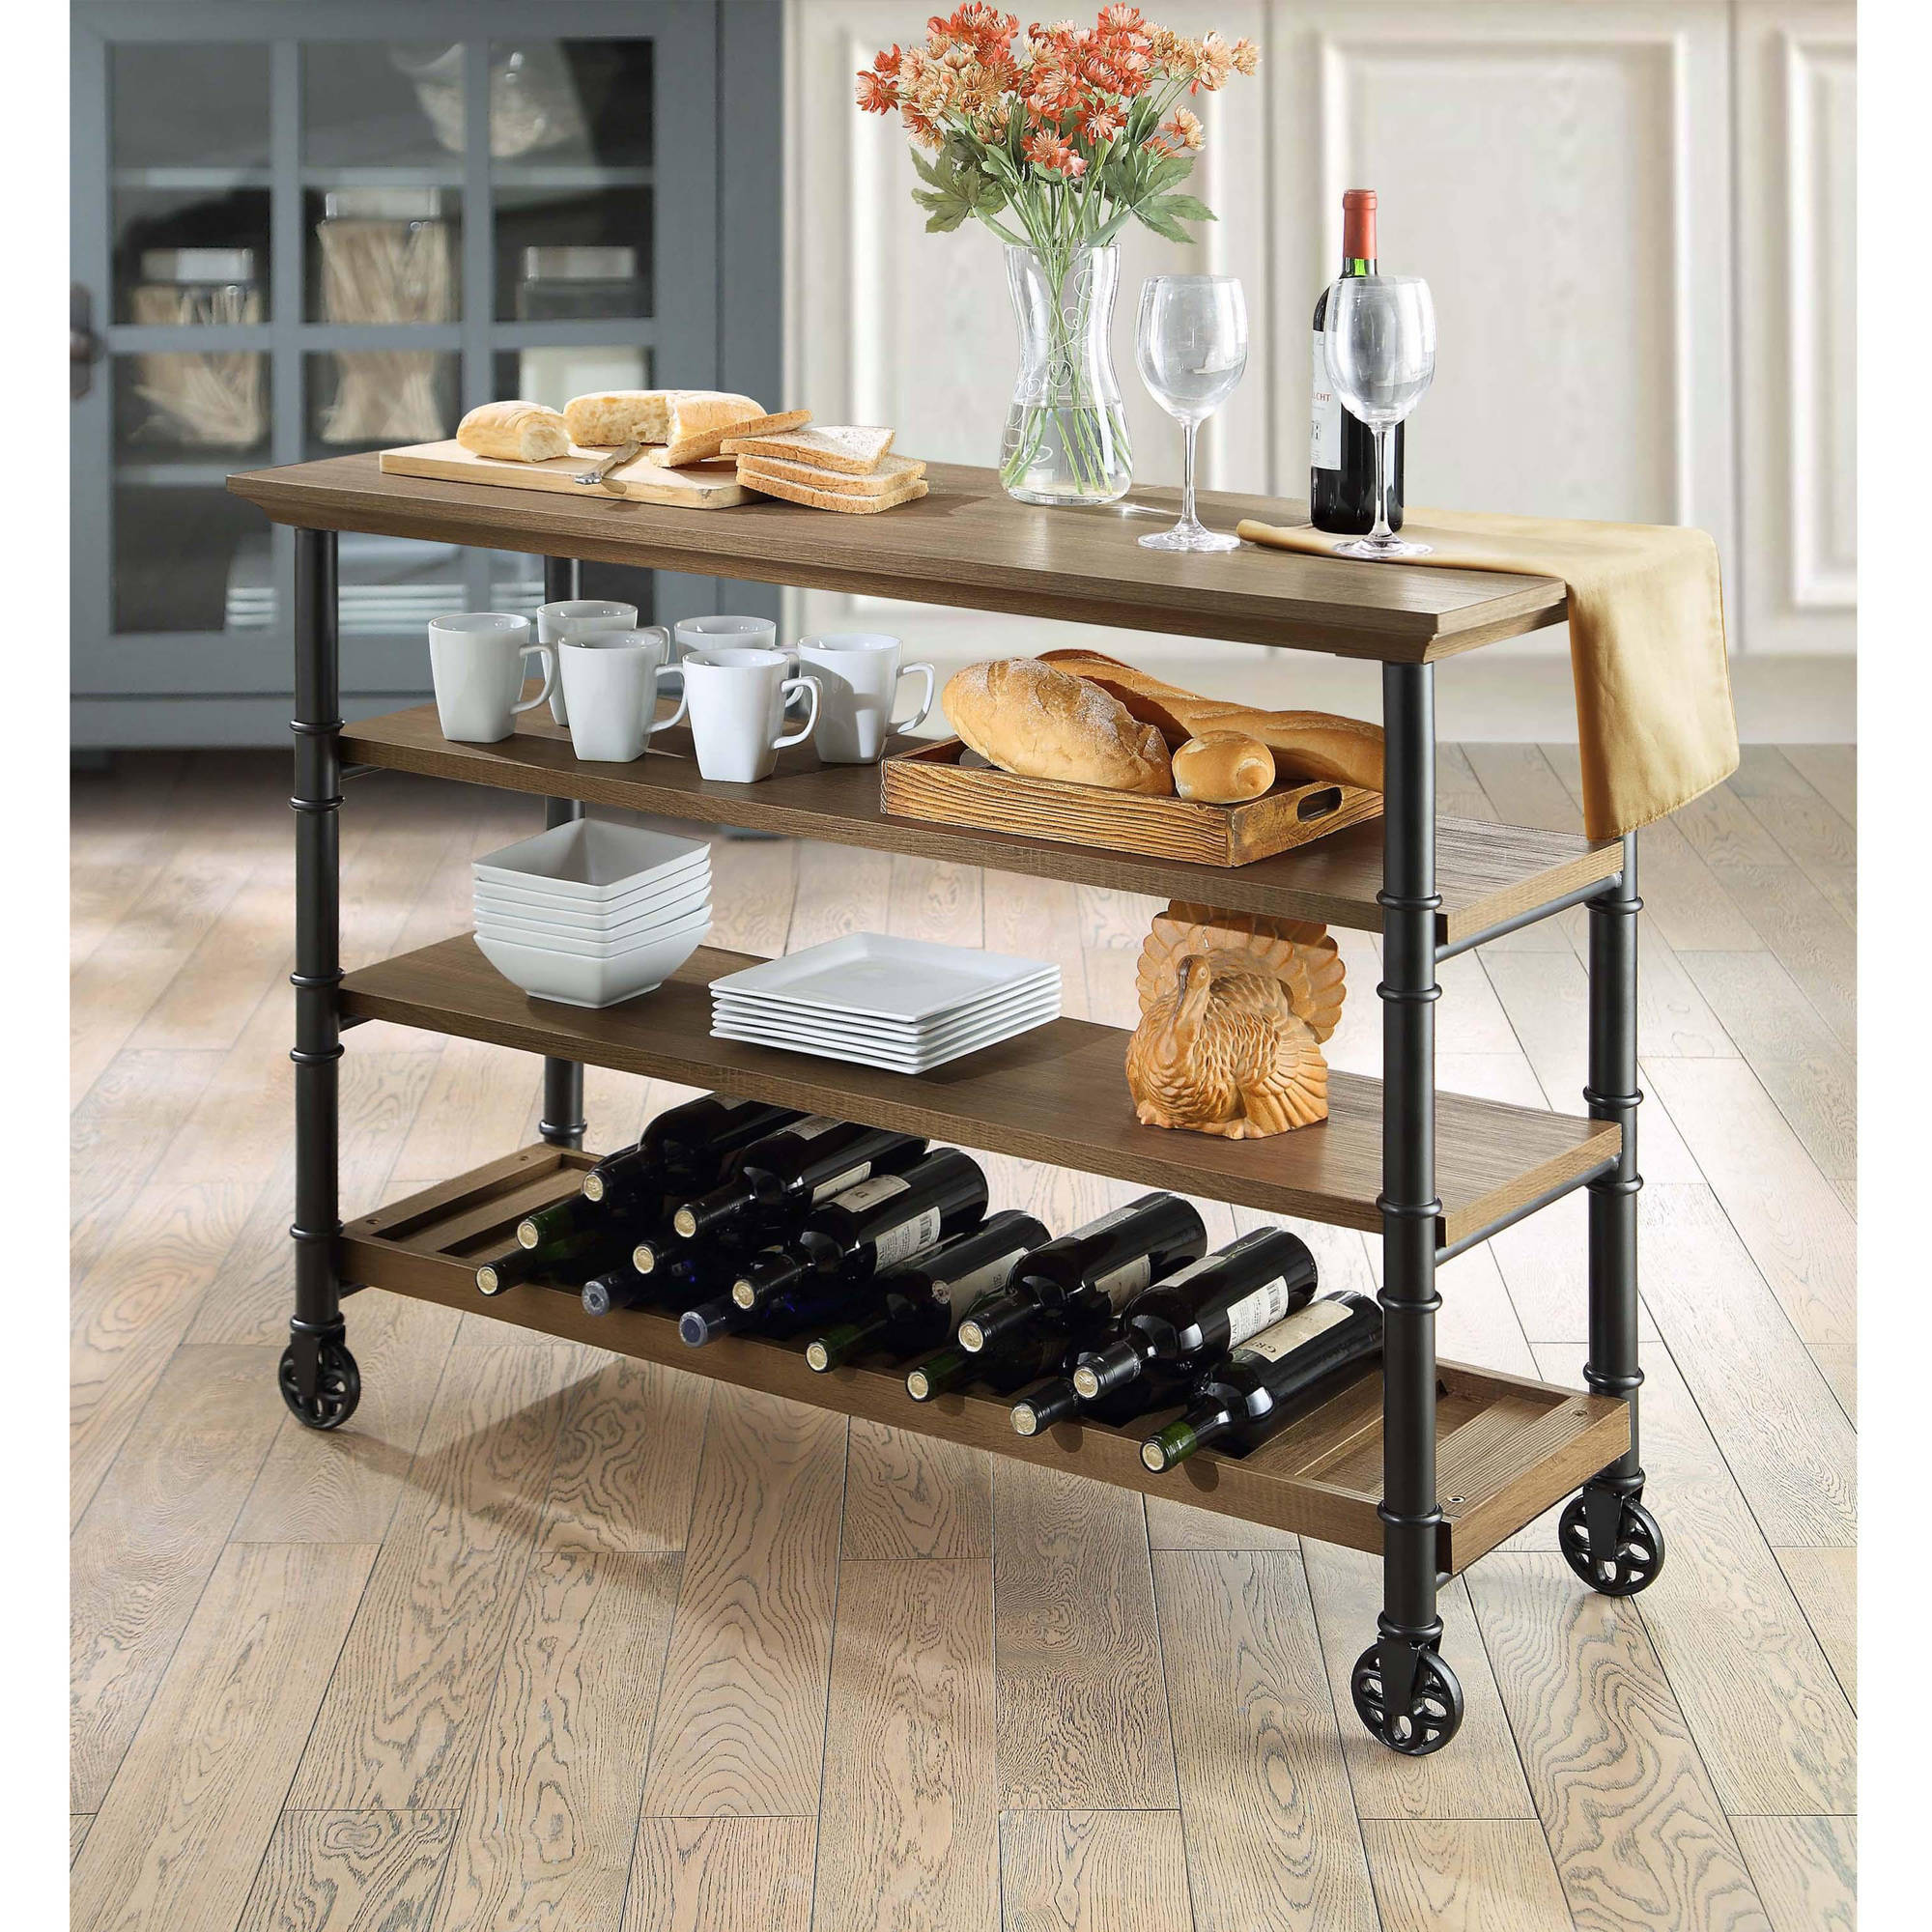 This whalen santa fe kitchen cart with metal shelves will make a beautiful addition to your home this cart is physically distressed by hand providing a